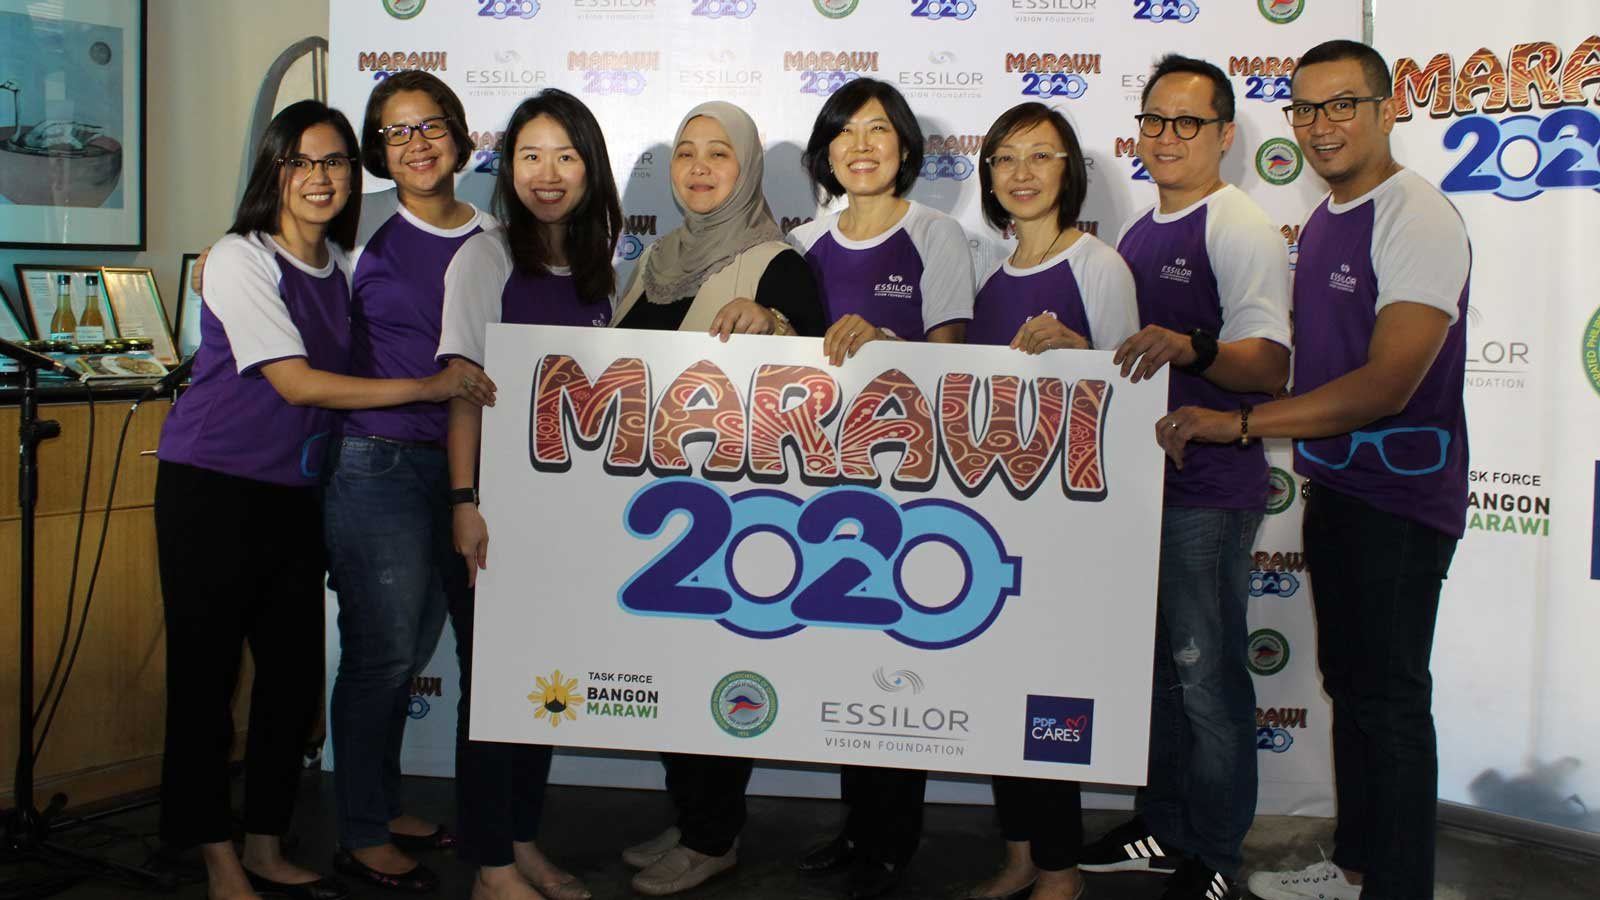 Essilor Vision Foundation launched Marawi 2020